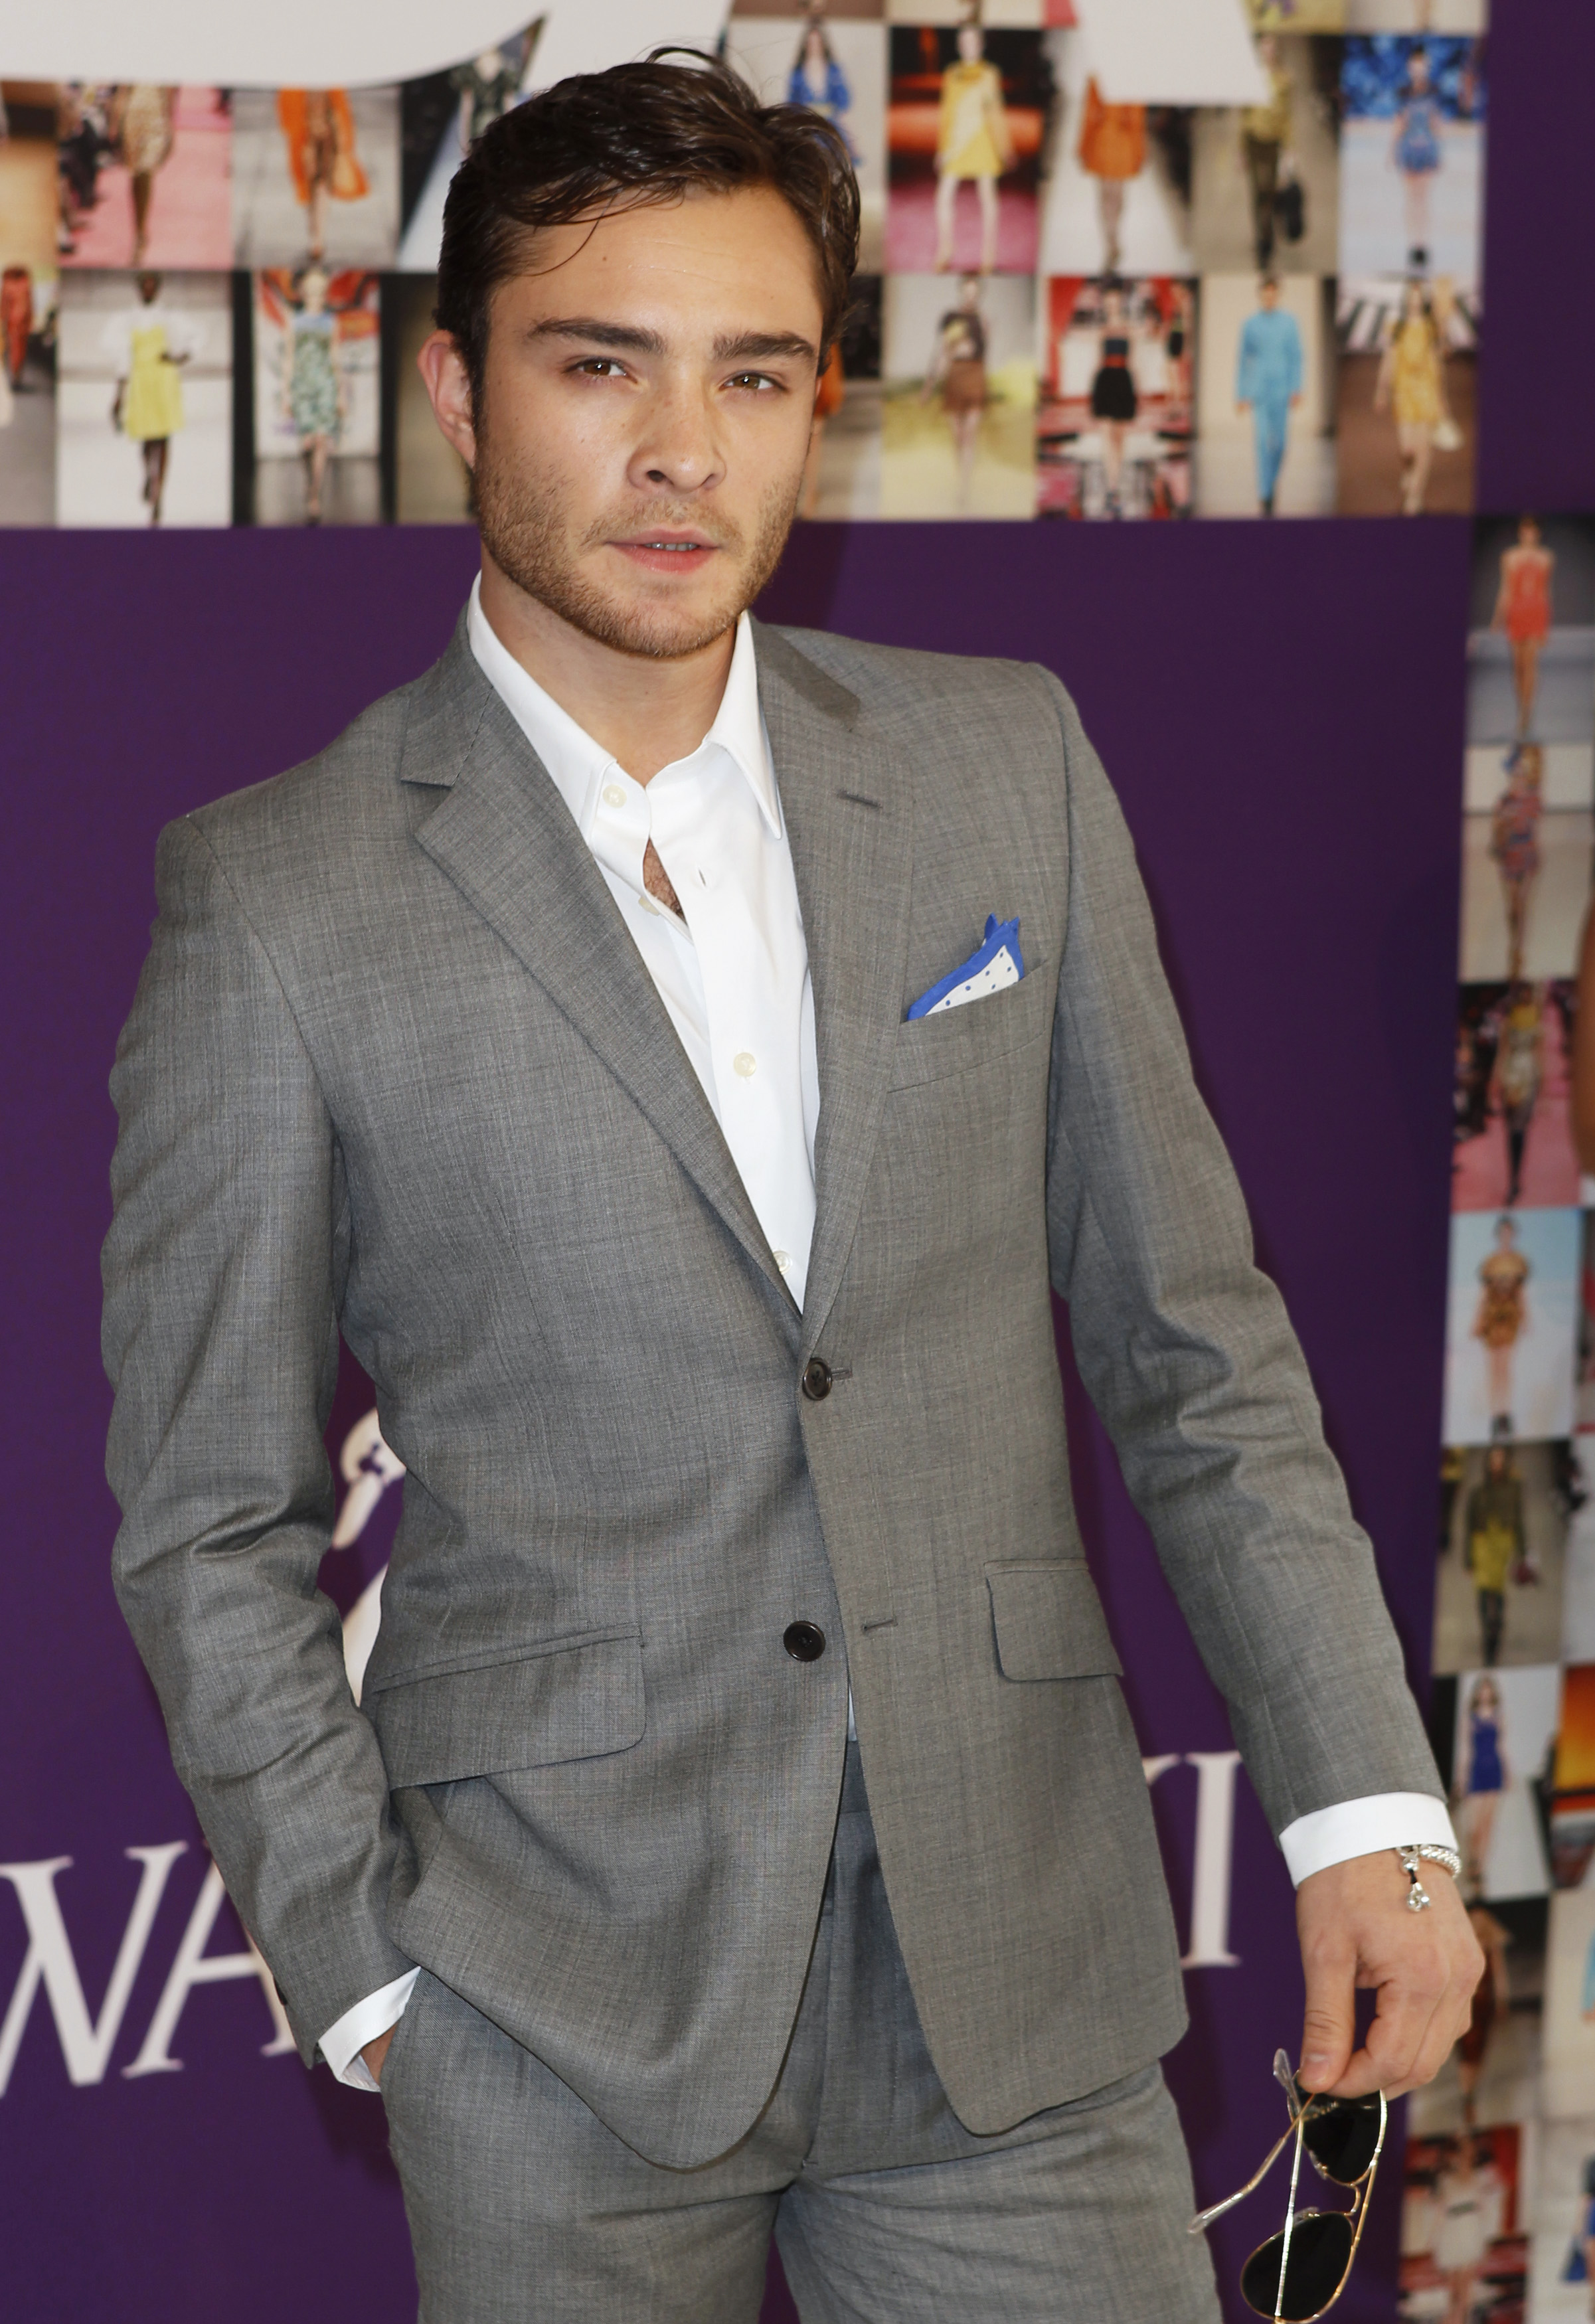 '50 Shades of Grey' Movie Male Actors: Ed Westwick Now ... Ed Westwick Now